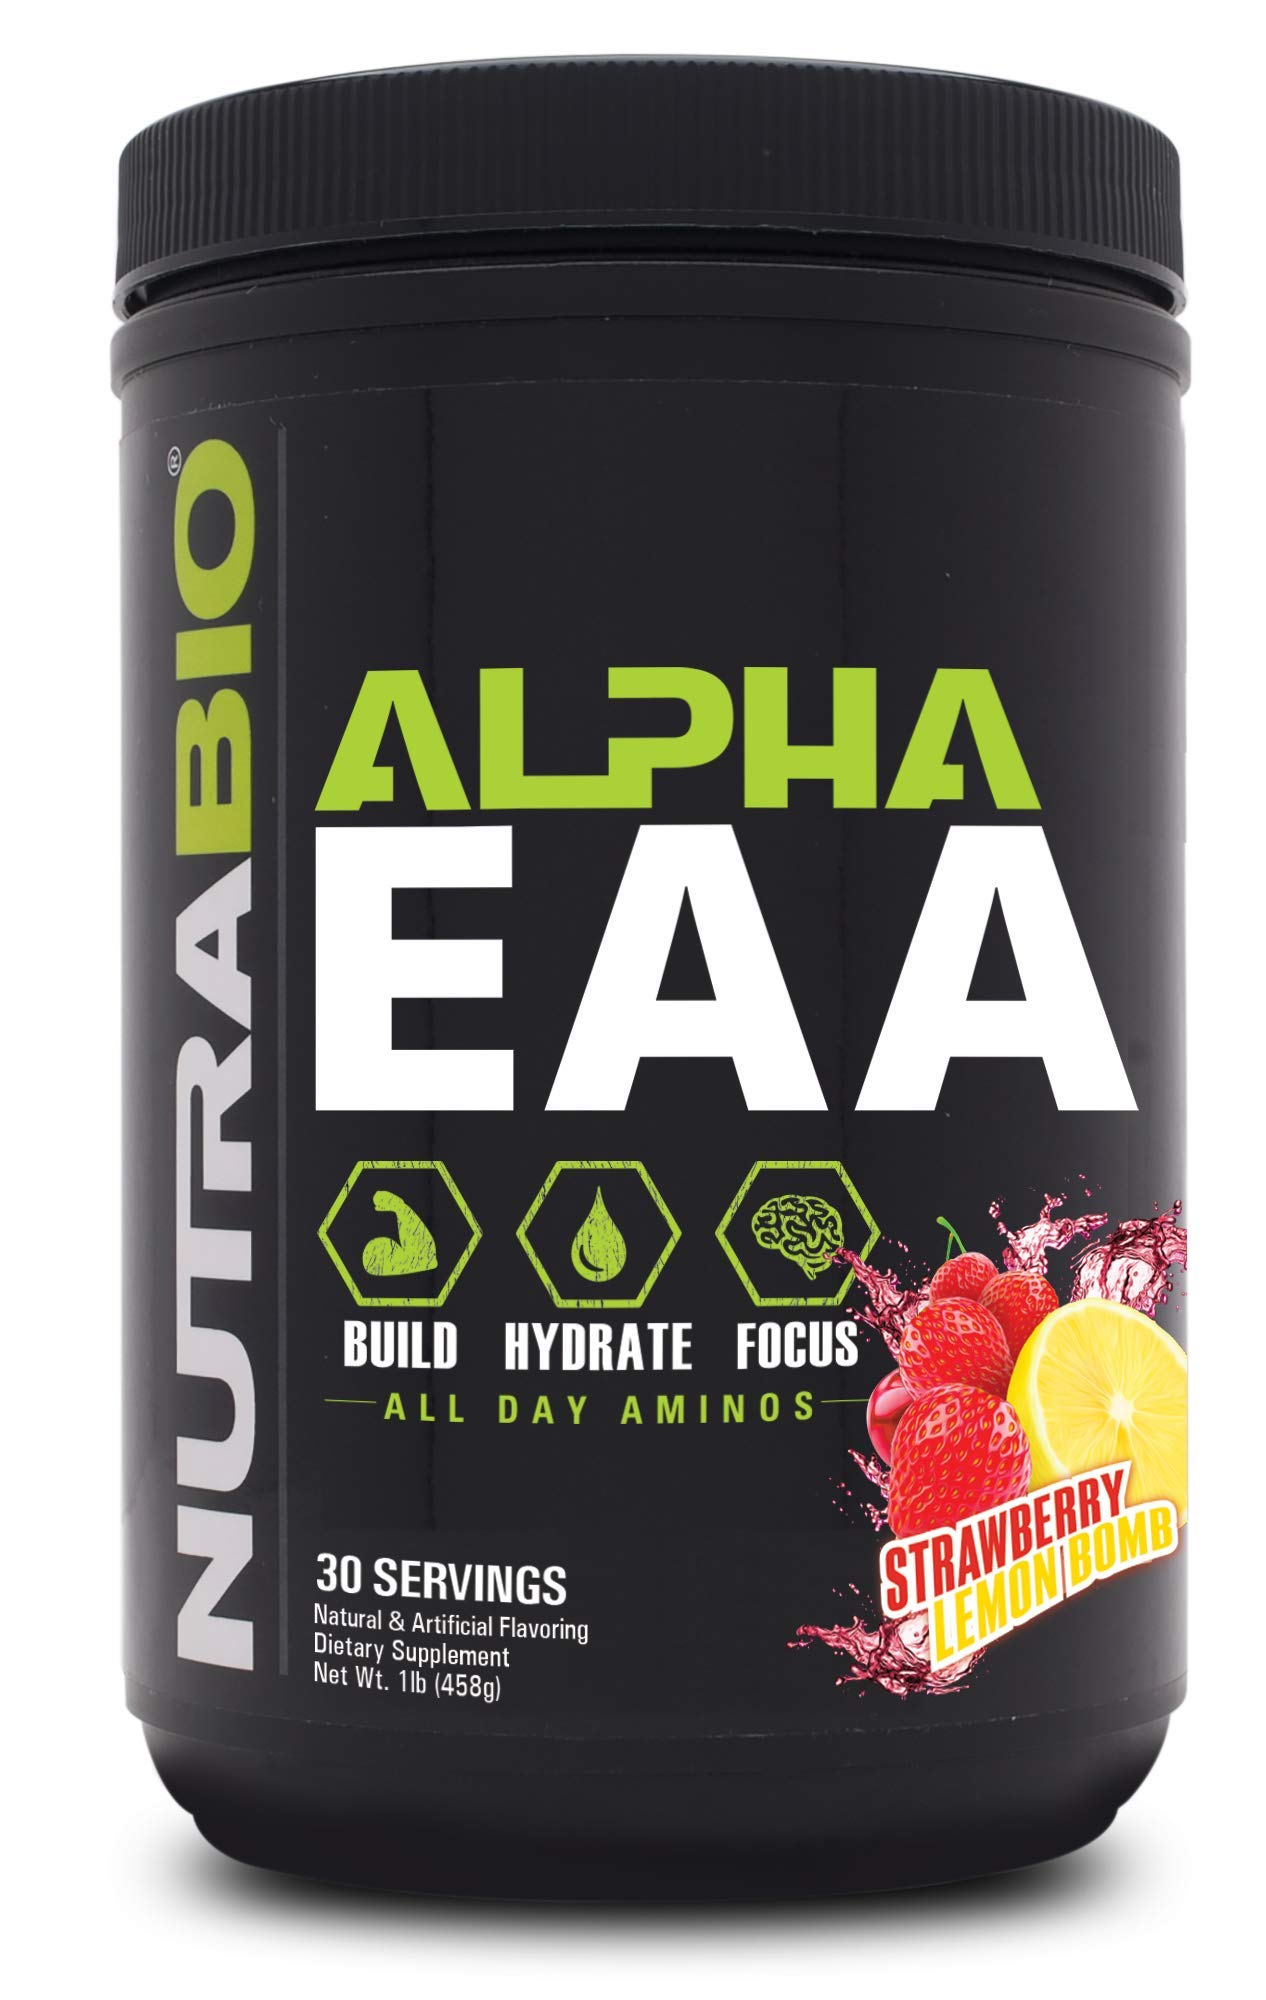 NutraBio Alpha EAA (Strawberry Lemon Bomb) - All-Day Recovery, Focus, and Hydration Supplement